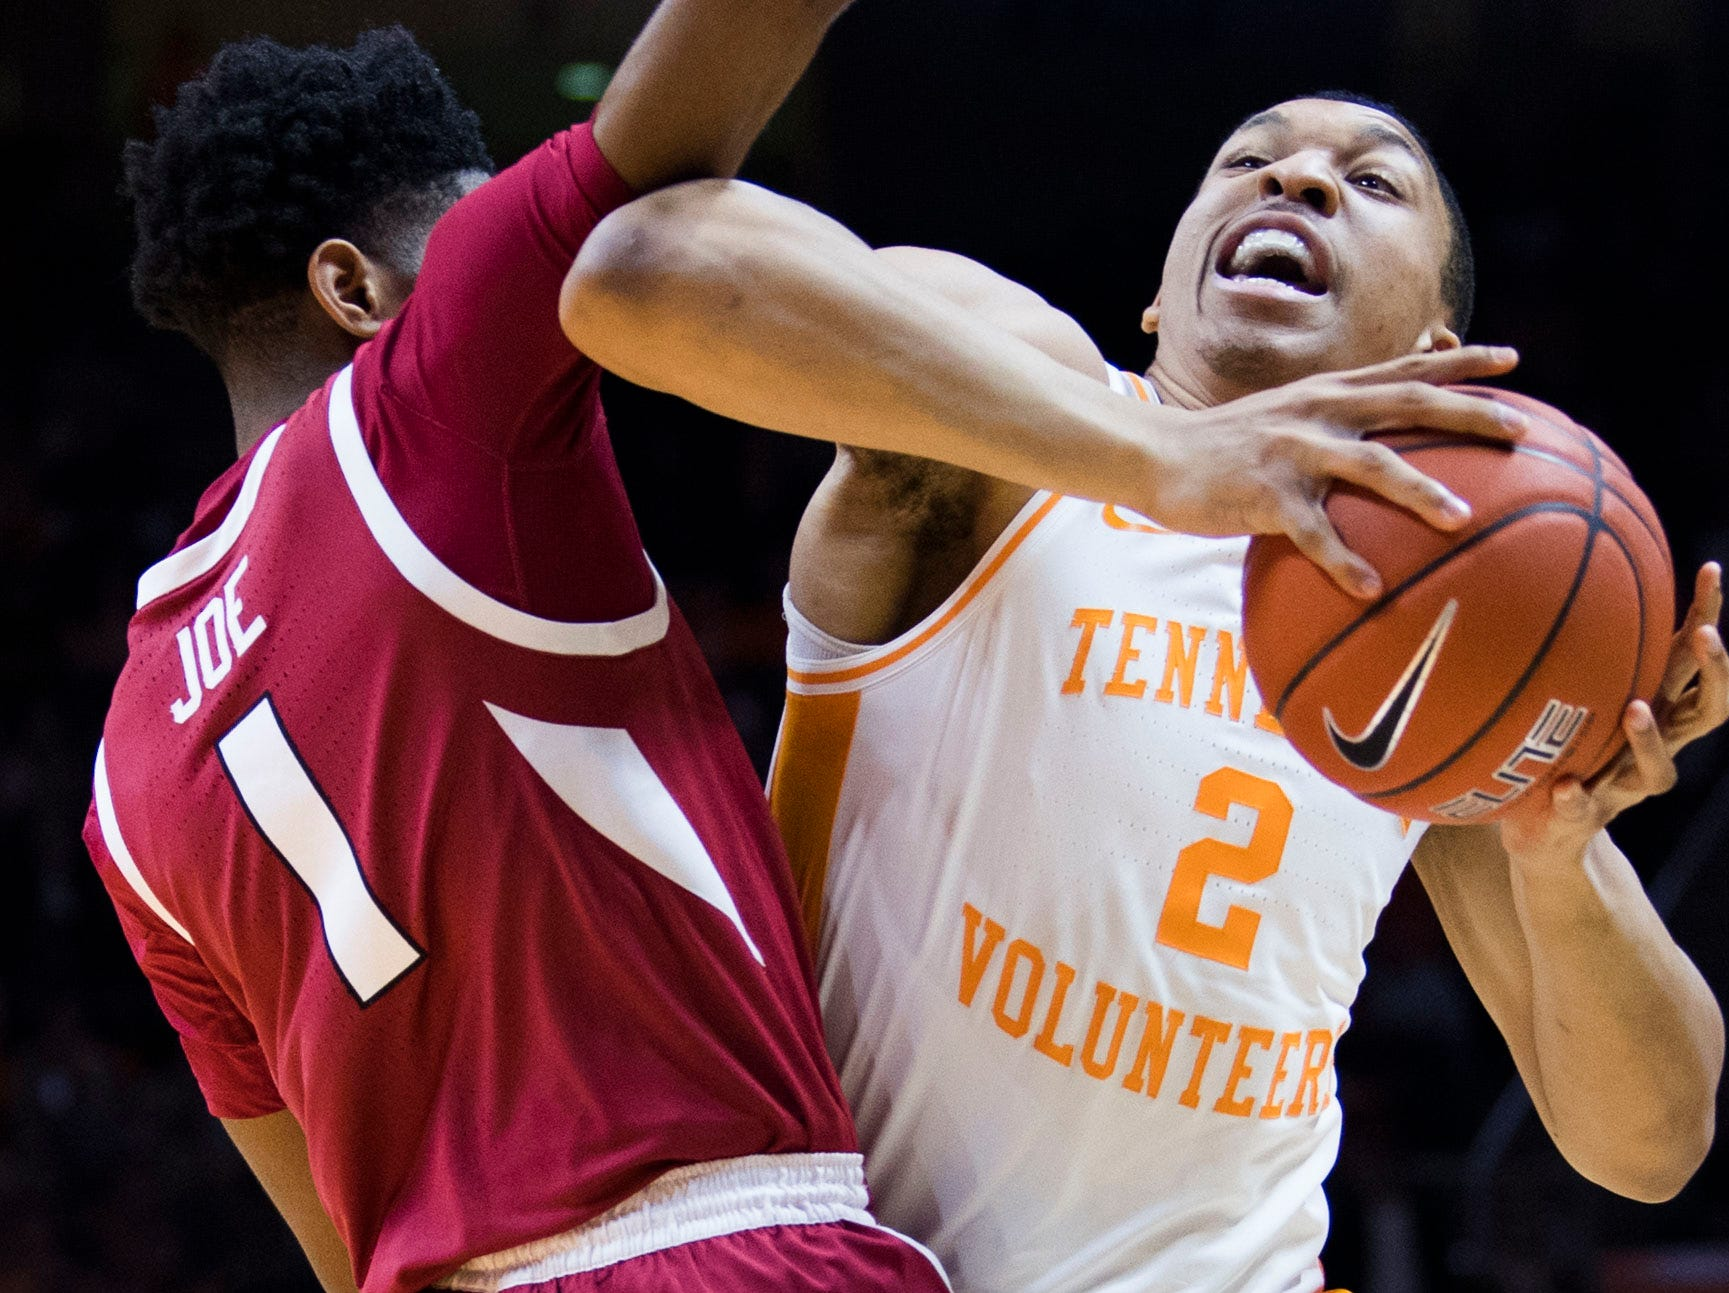 Tennessee's Grant Williams (2) takes a shot while defended by Arkansas' Isaiah Joe (1) during a NCAA men's basketball game between Tennessee and Arkansas at Thompson-Boling Arena Tuesday, Jan. 15, 2019.